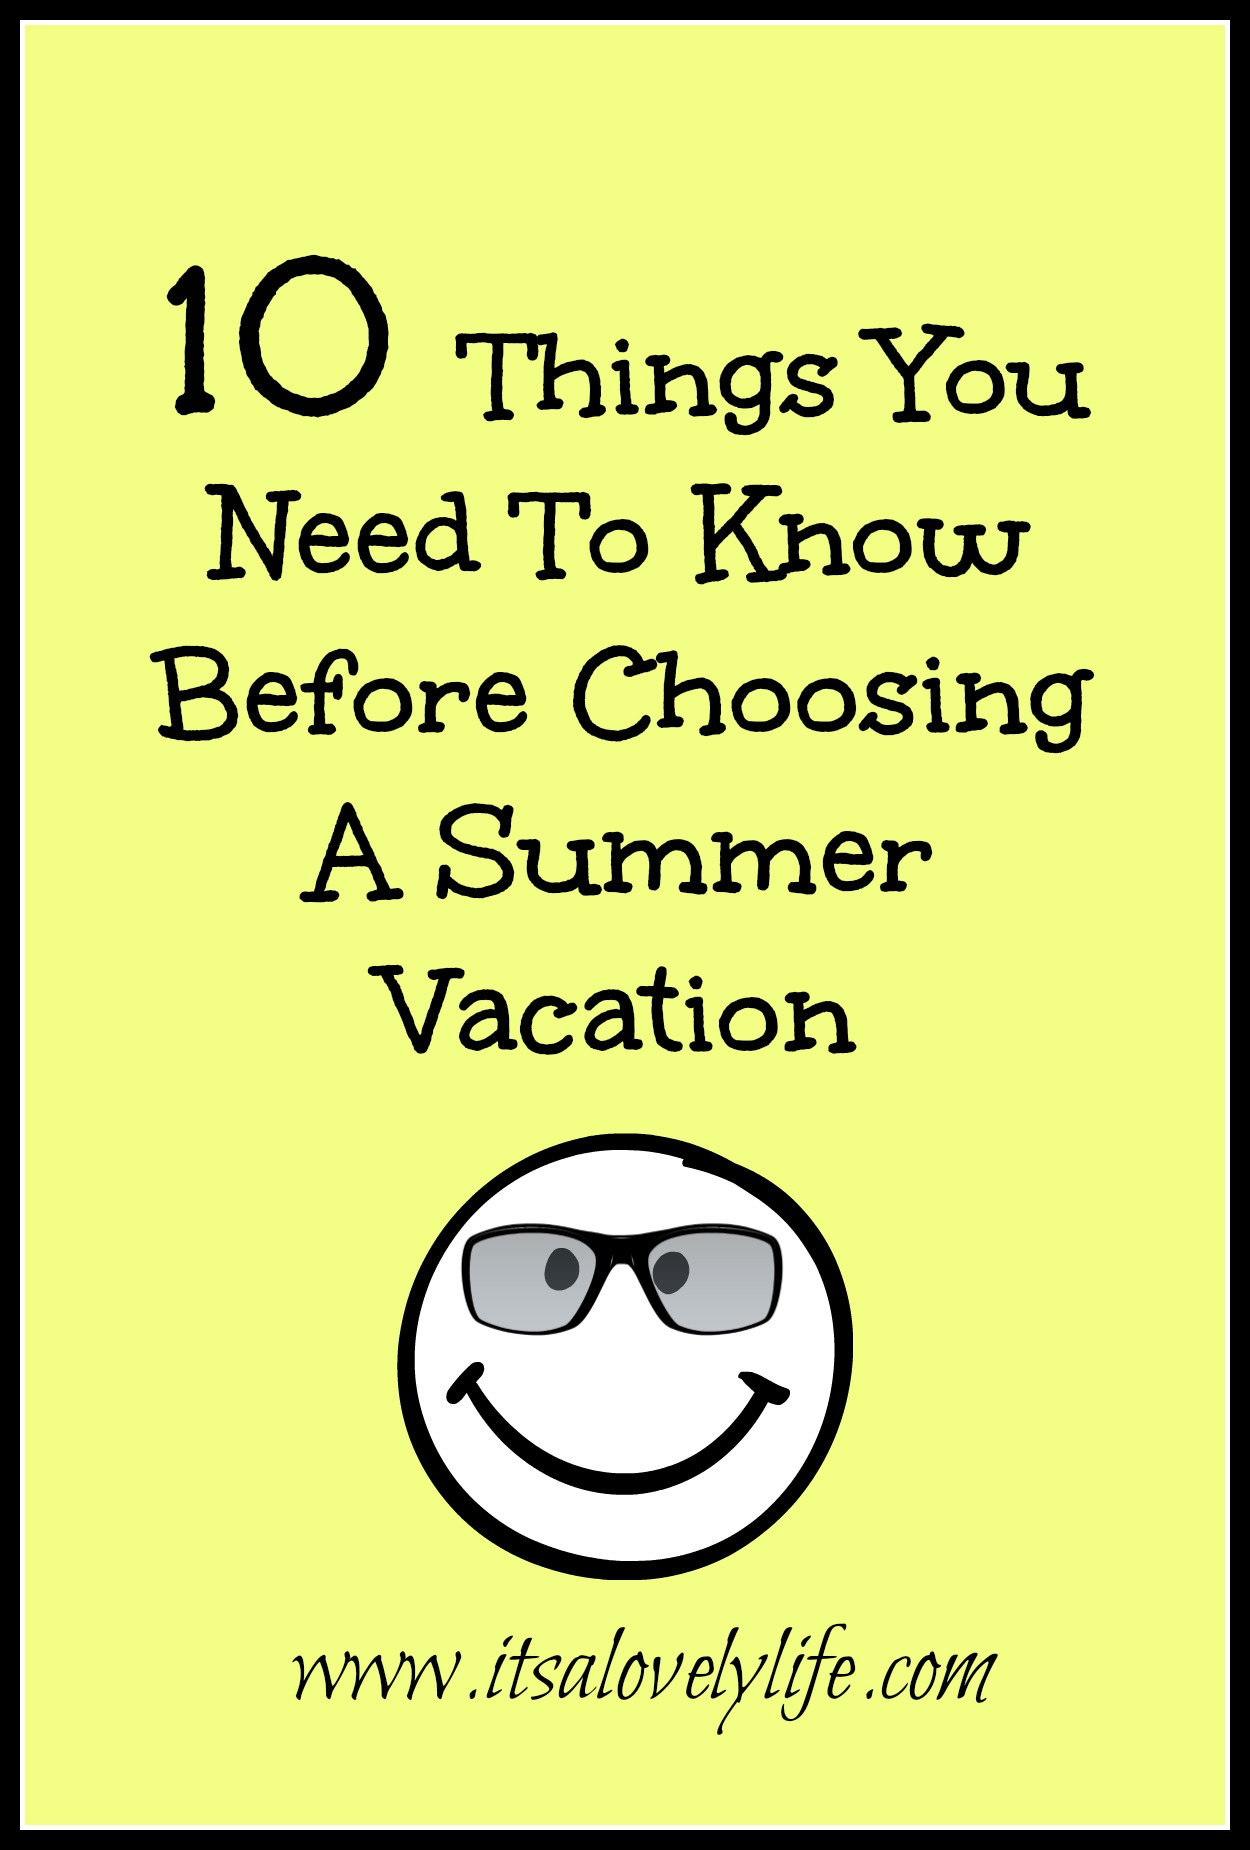 Things to know before choosing a summer vacation